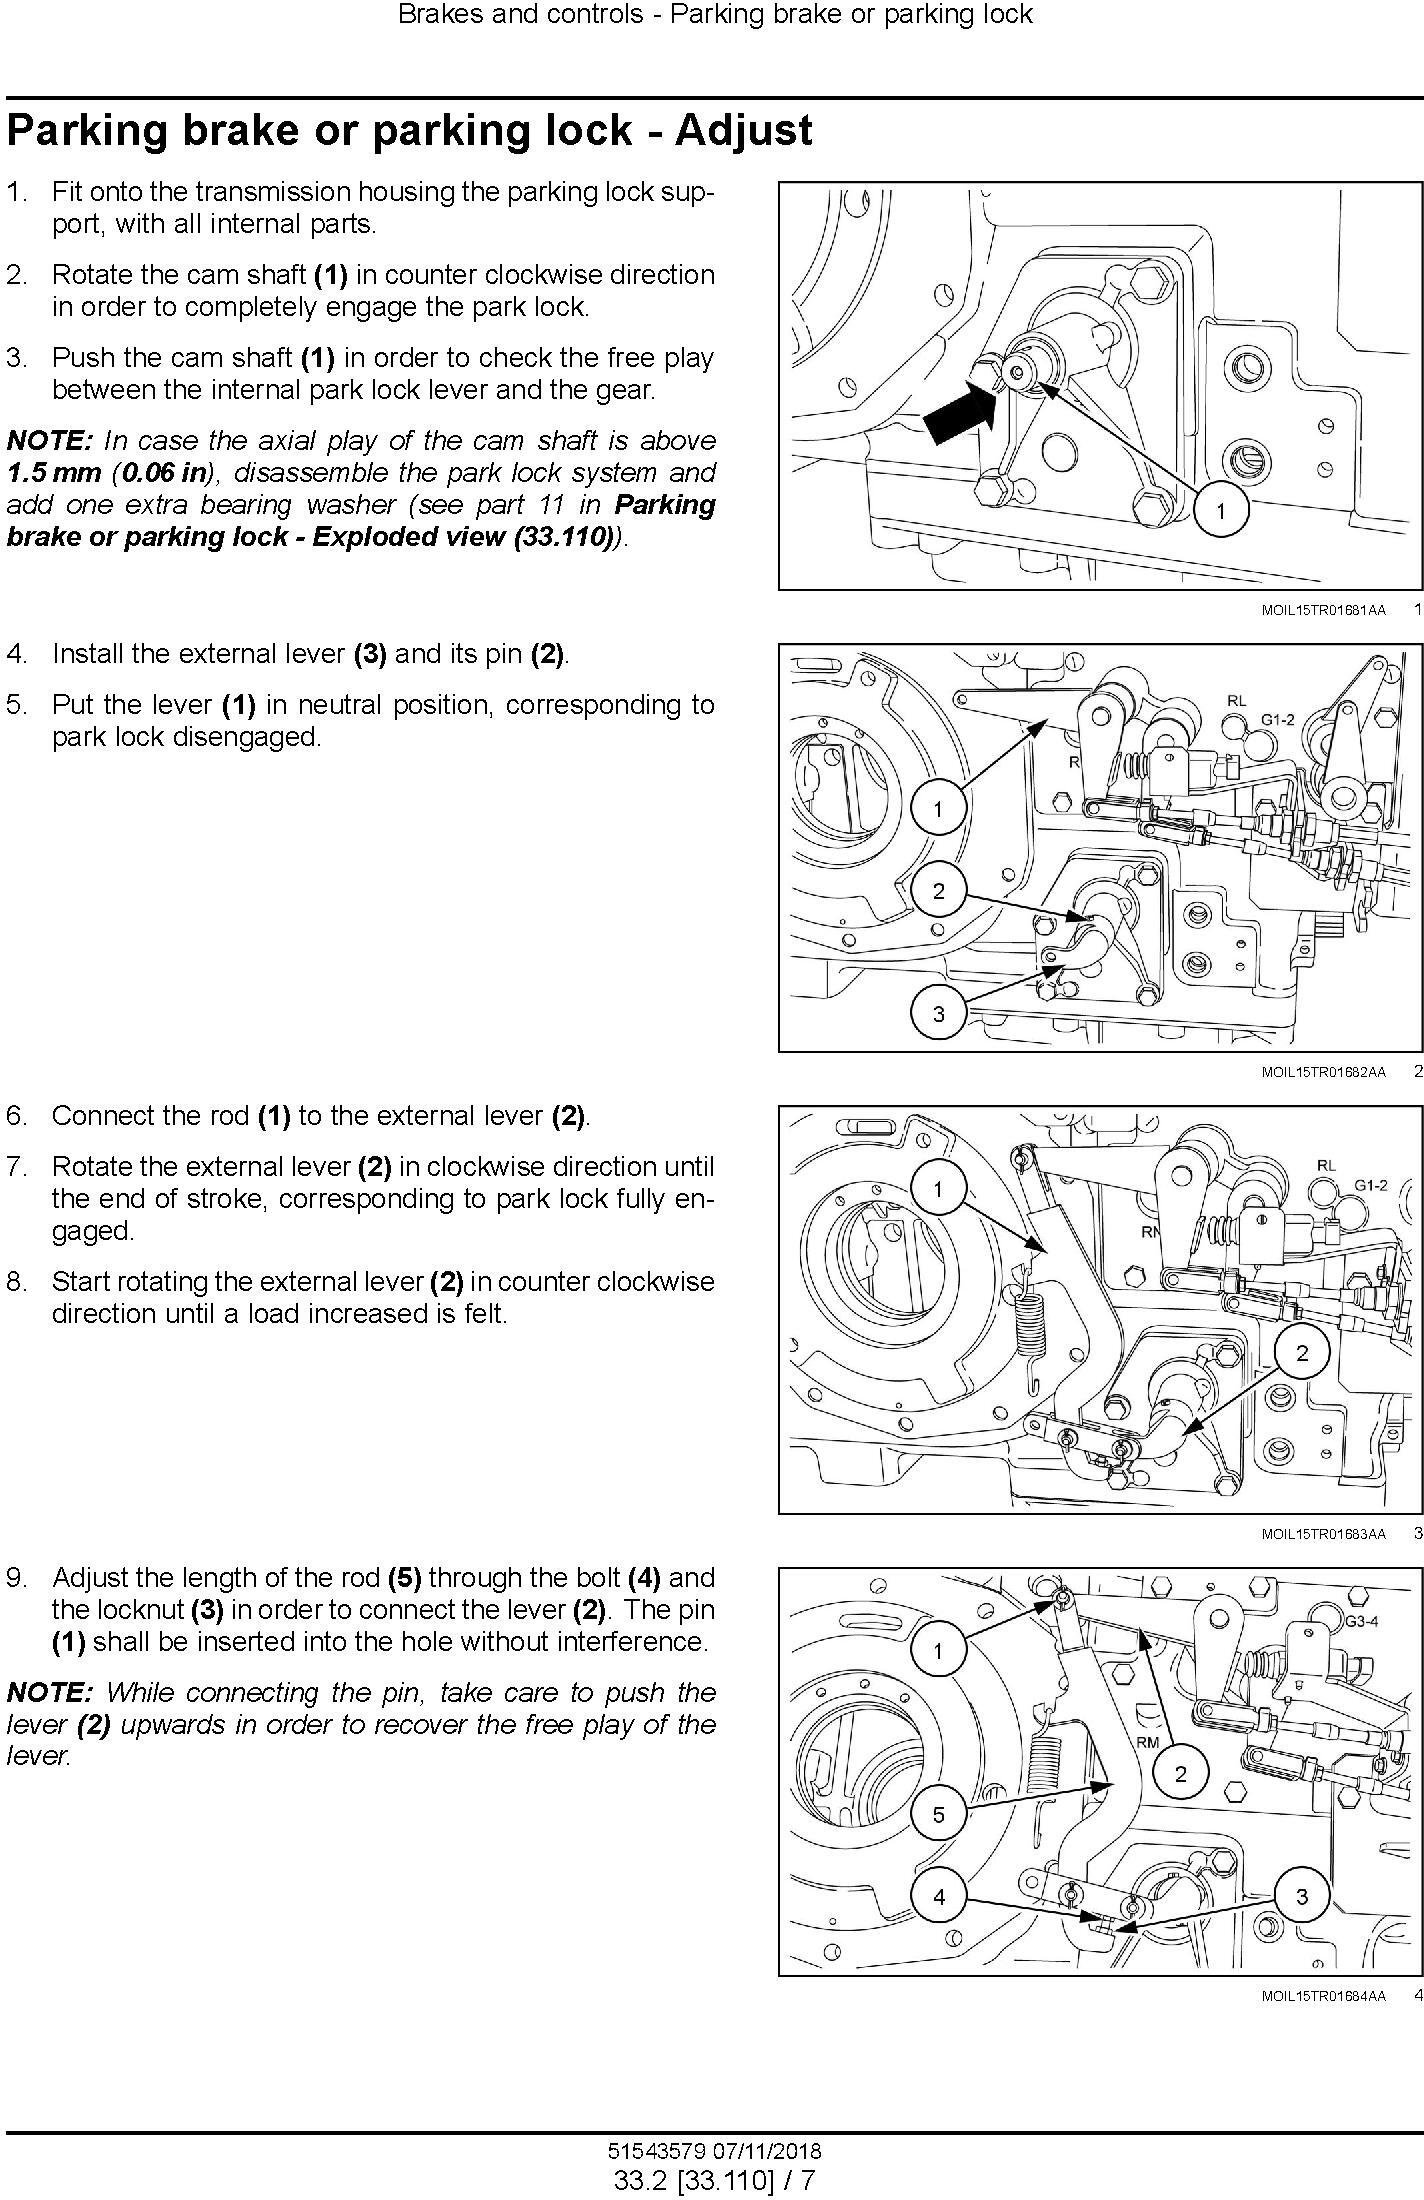 New Holland T5.90, T5.100, T5.110, T5.120 Tier 4B (final) Tractor Service Manual (North America) - 3